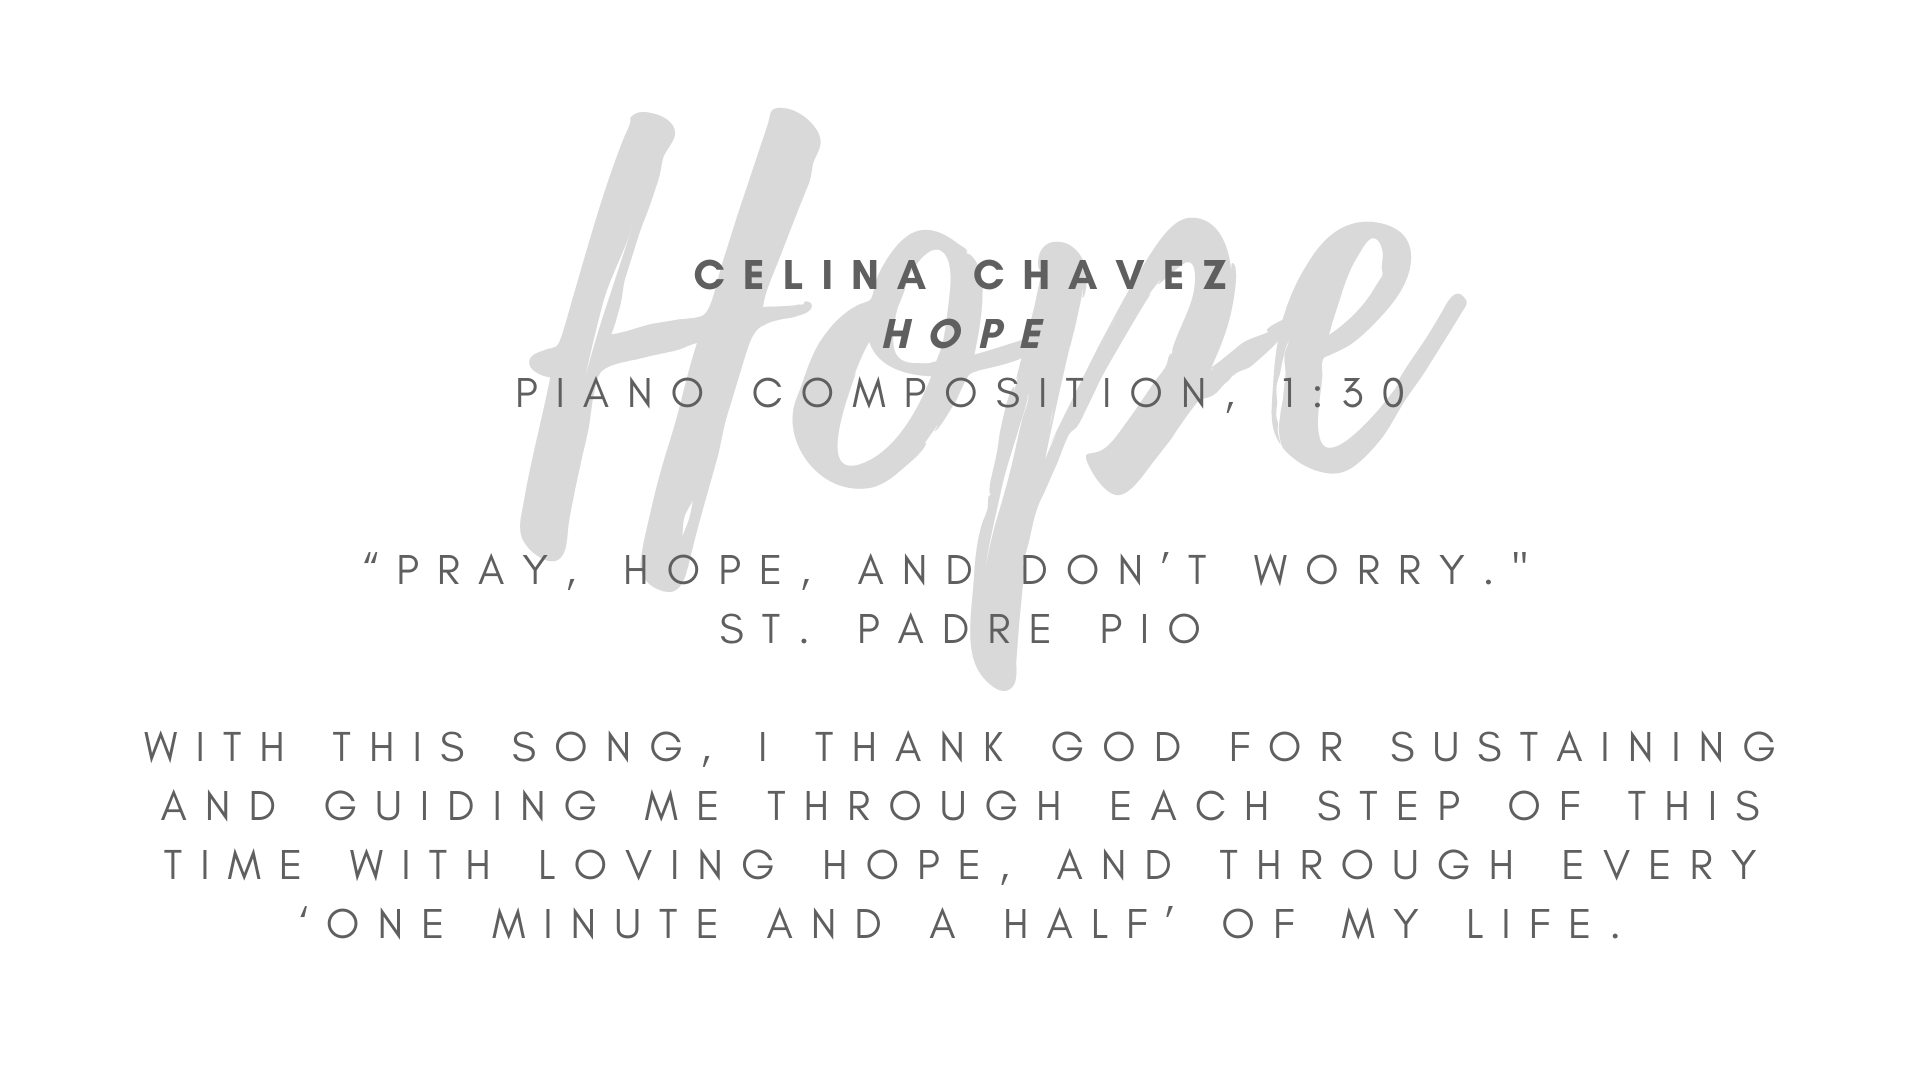 "Celina Chavez ""Hope"" Piano composition, 1:30  ""Pray, hope, and don't worry."" // St. Padre Pio This song was inspired by our time in quarantine earlier this year - this time of not knowing when life would return to normal, waiting to return to Mass, longing to gather with loved ones, of potential and creativity. I embrace that God works in our circumstances and lives to make way for His grace that we might seek faith, gratitude, and time – time to pray, to rest and find courage, to discern and heal as we may need, to open our hands. With this song, I thank God for sustaining and guiding me through each step of this time with loving hope, and through every 'one minute and a half' of my life.  ARTIST STATEMENT My name is Celina Chavez, and I am blessed to assist in the Art at the Abbey initiative. For as long as I can remember, I have been moved by the arts, by the Holy Spirit's presence in them. I believe it is the work of the Holy Trinity in my life that has cultivated my value for a perspective and presence of hope, a value I am always seeking to share. I love my family, friends, and Catholic faith more than I can say, and I'm thankful for how God continues to use everything, including my home here in Albuquerque, to inspire me toward faith, hope and love."